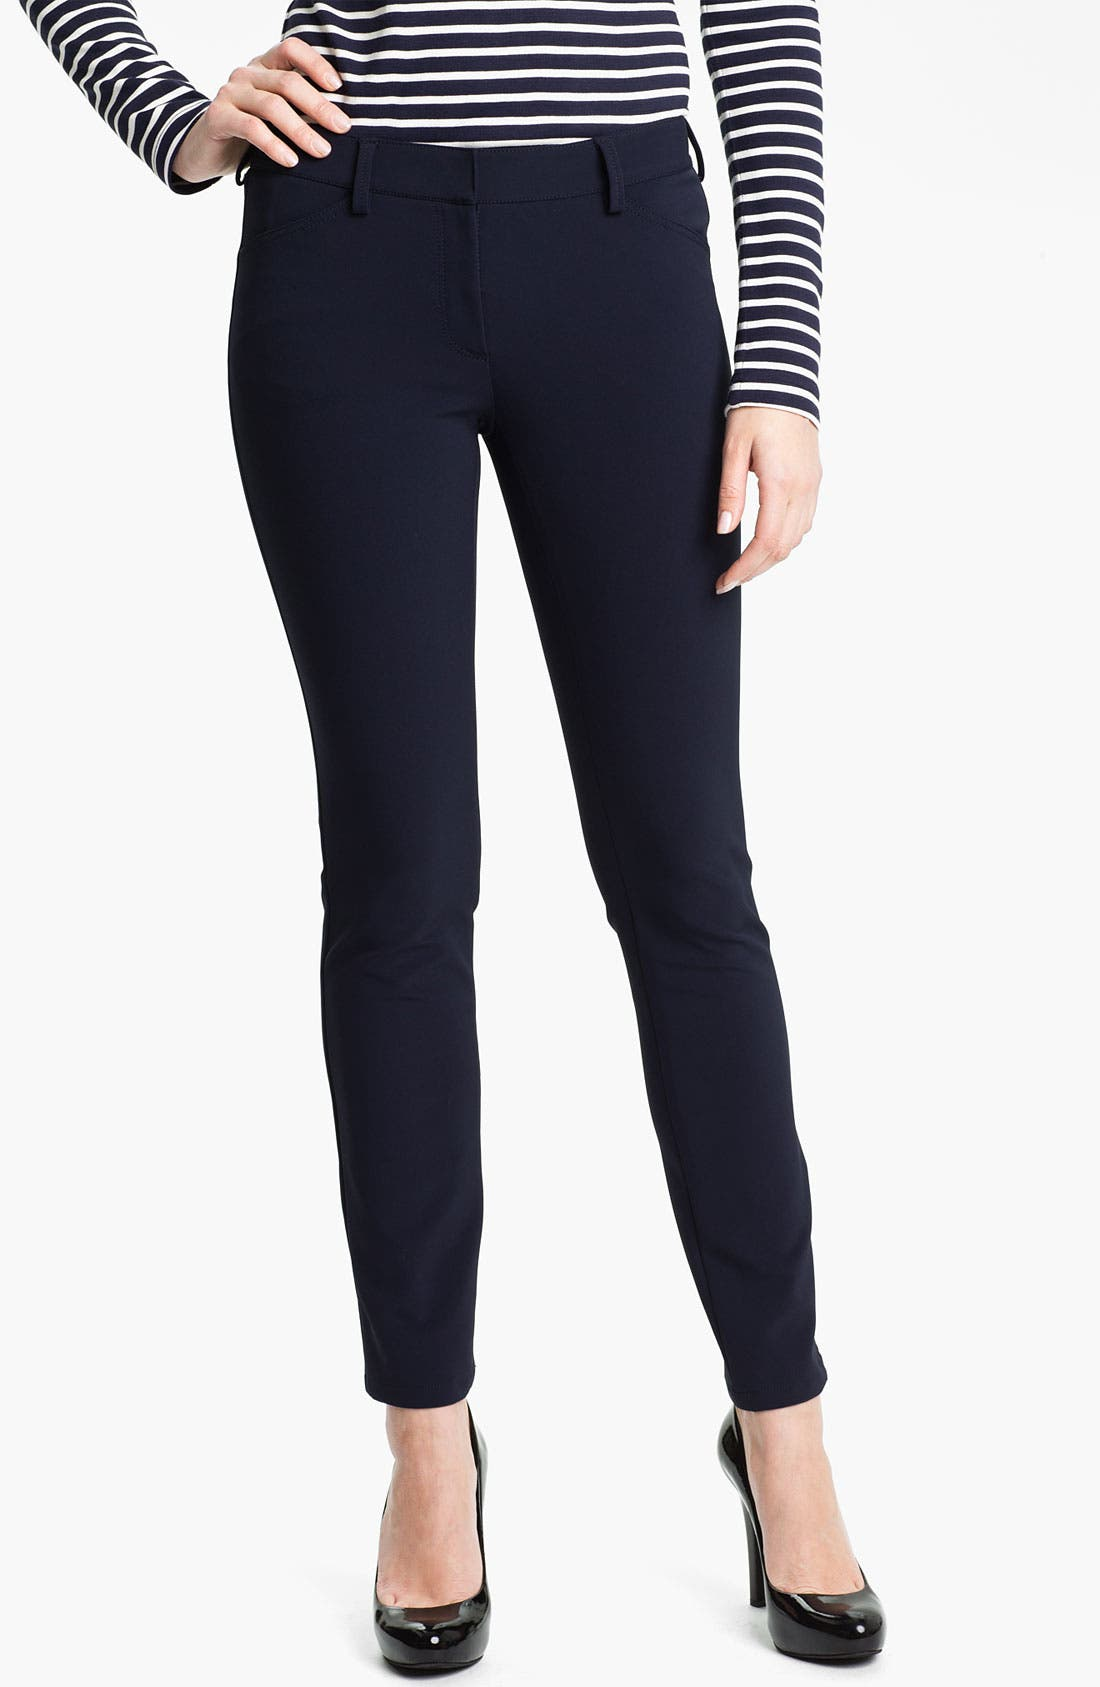 Alternate Image 1 Selected - Theory 'Dantey' Ankle Pants